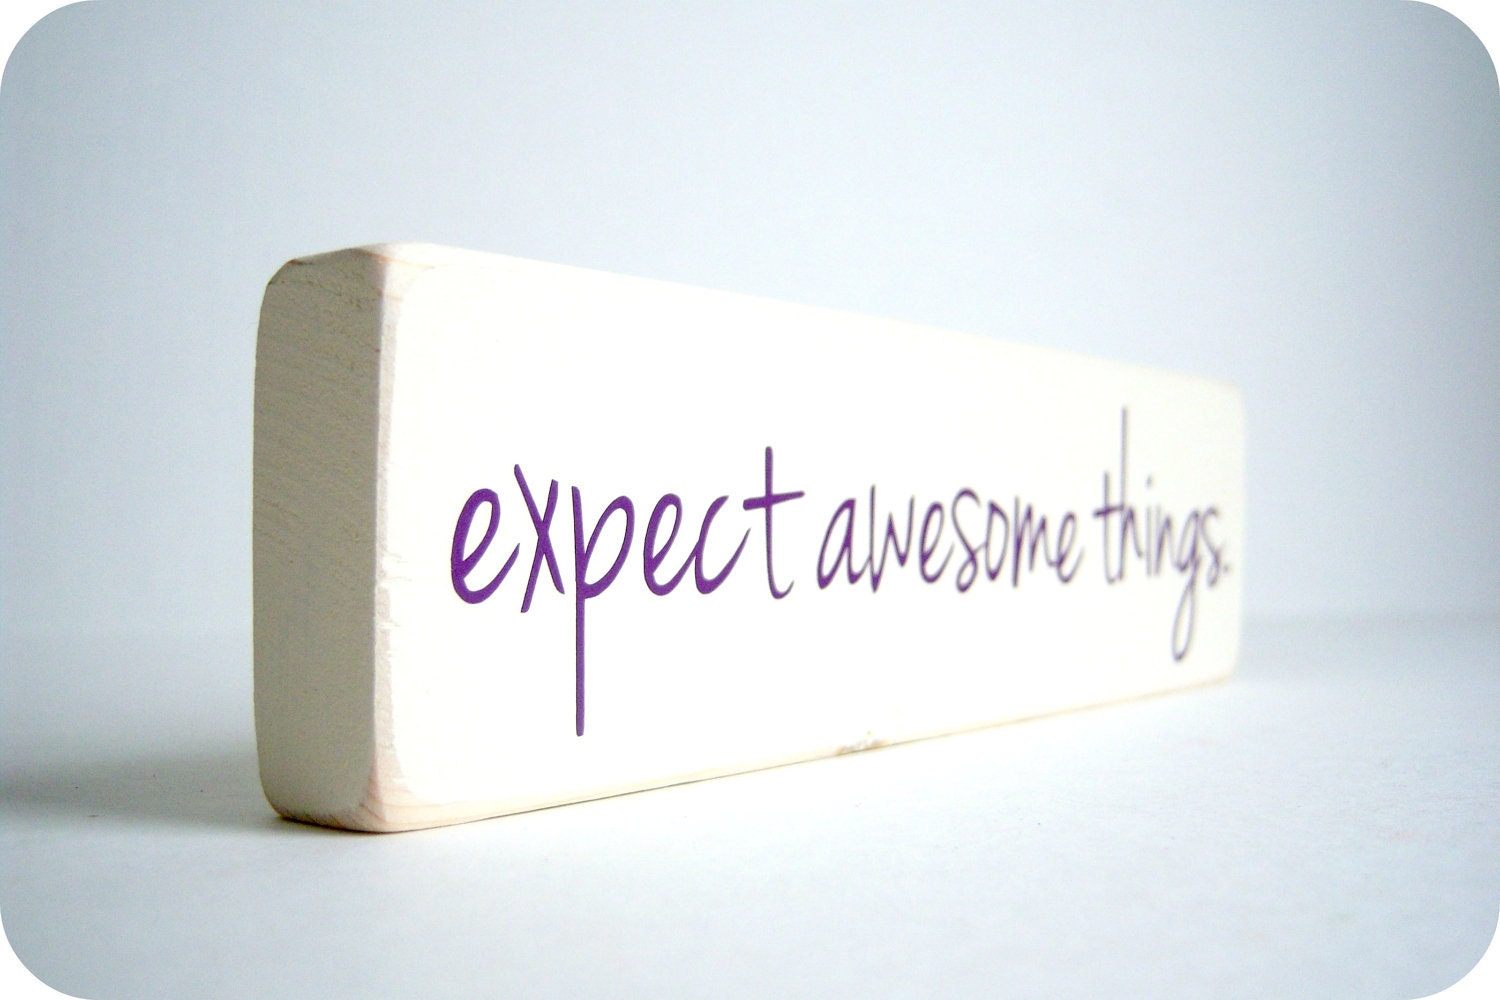 Expect Awesome Things.